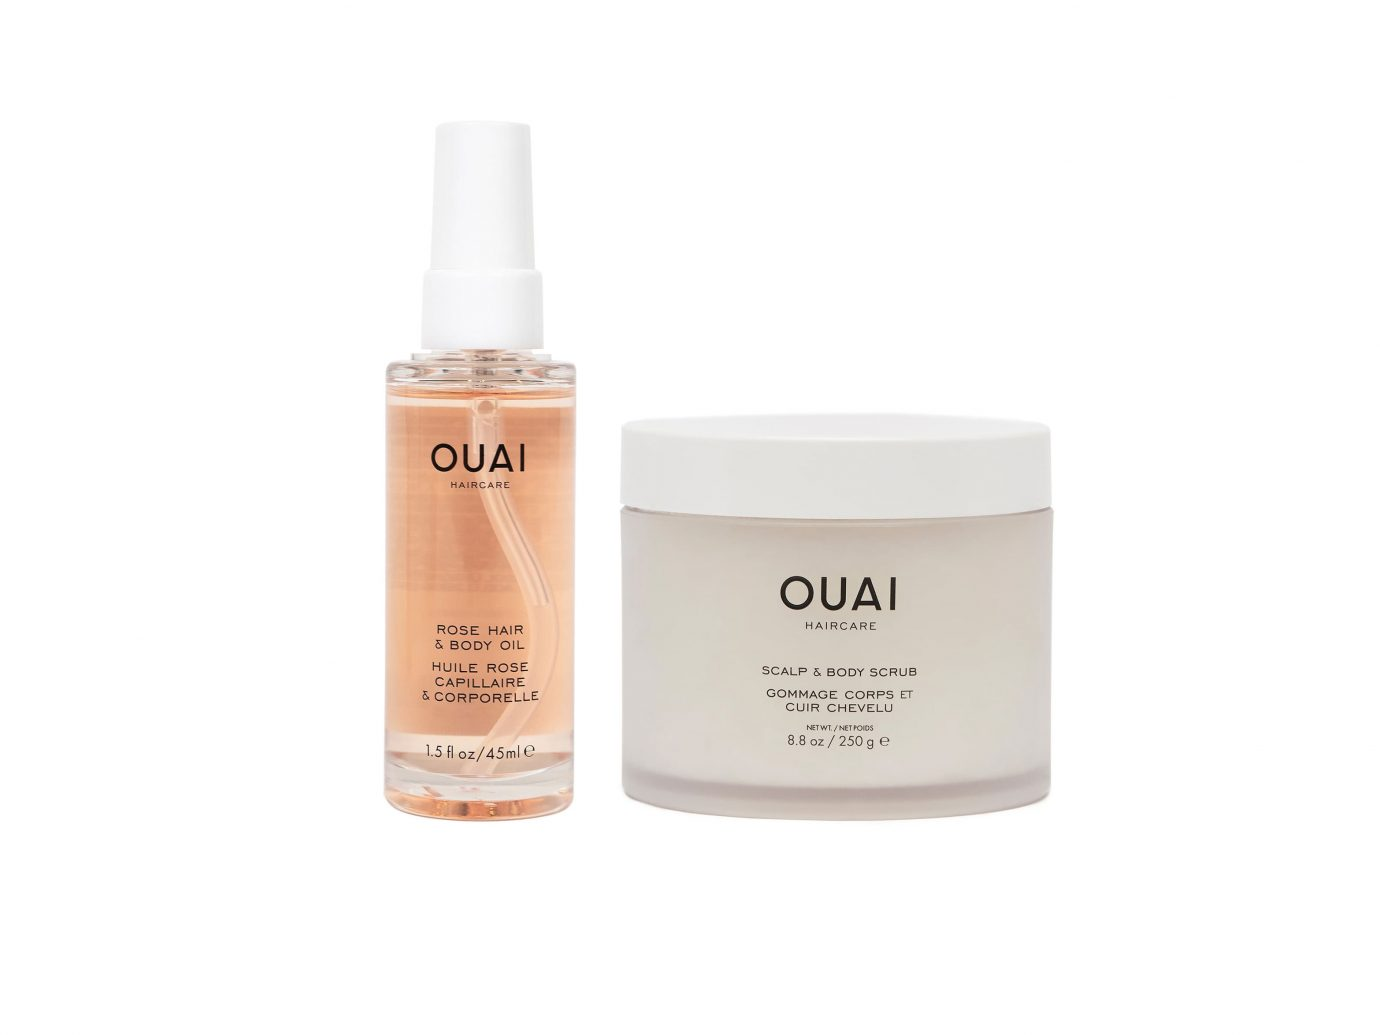 OUAI to Glow Set